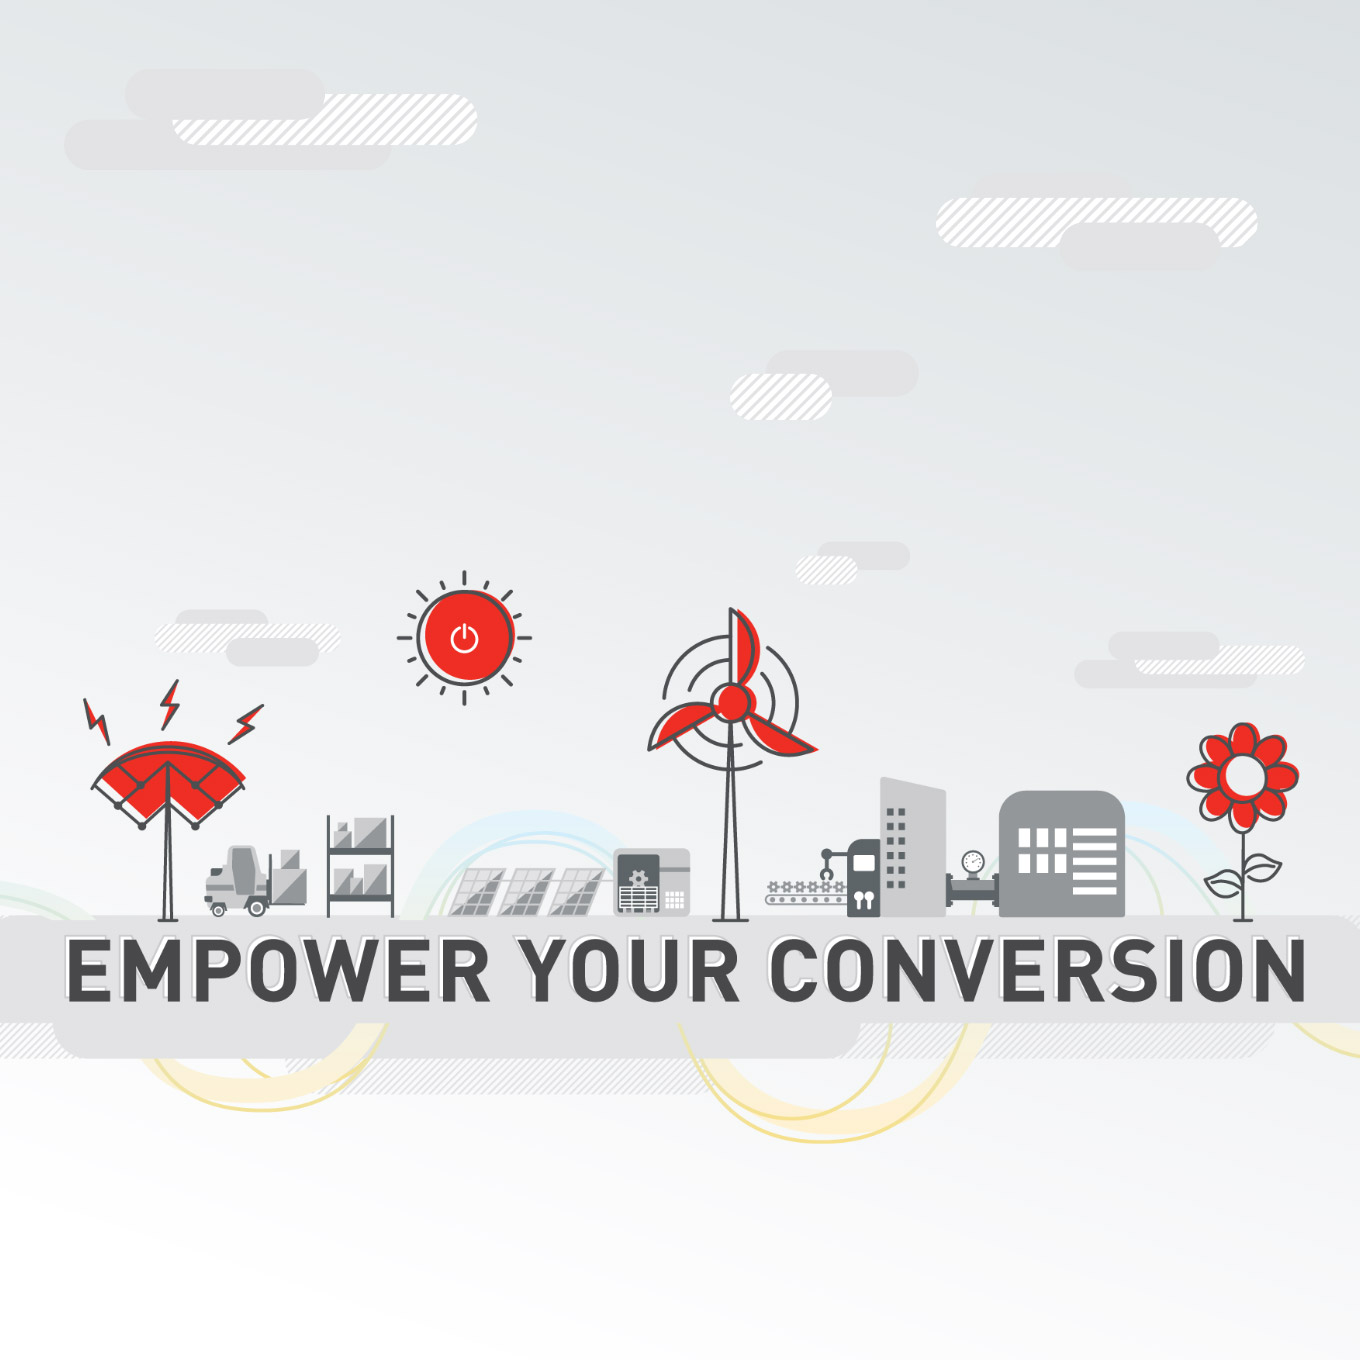 AEP empower your conversion